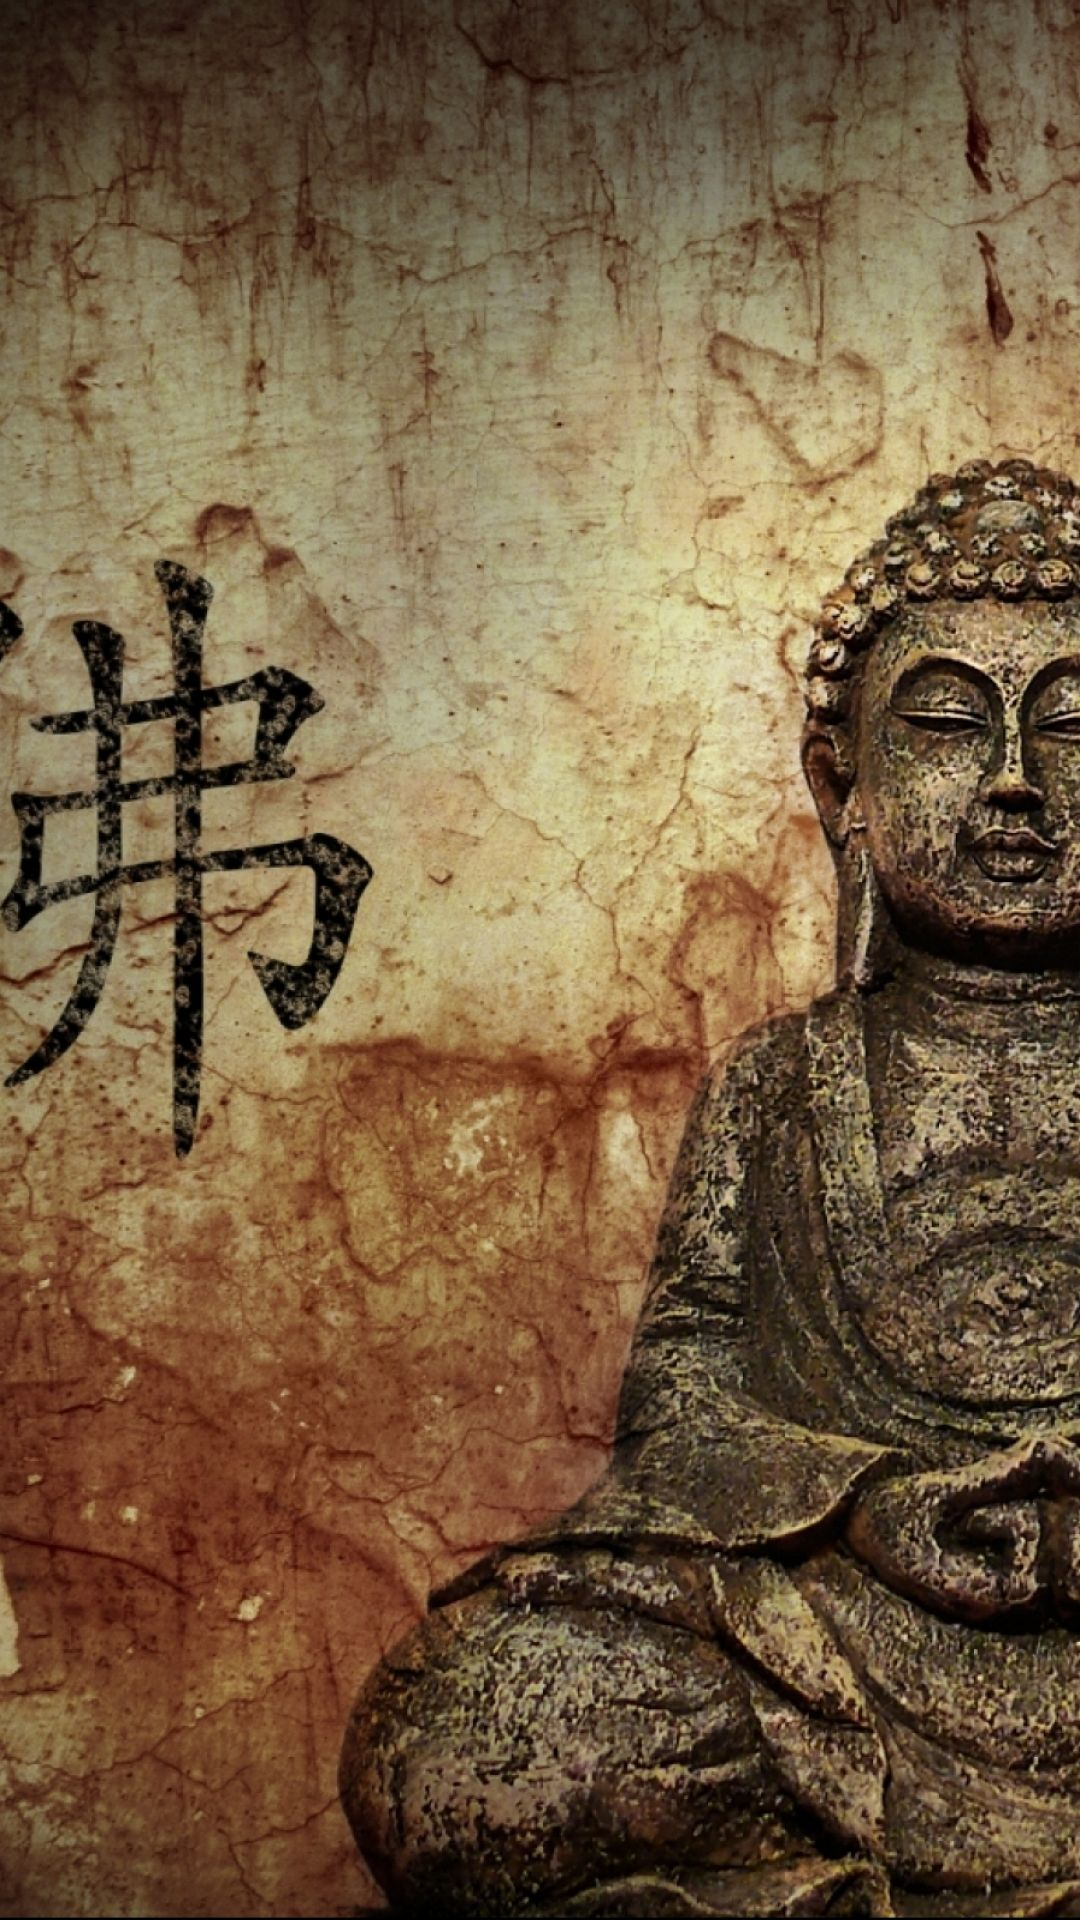 Buddha Iphone Wallpaper Google Search Buddha Wallpaper Iphone Buddhism Wallpaper Lord Buddha Wallpapers